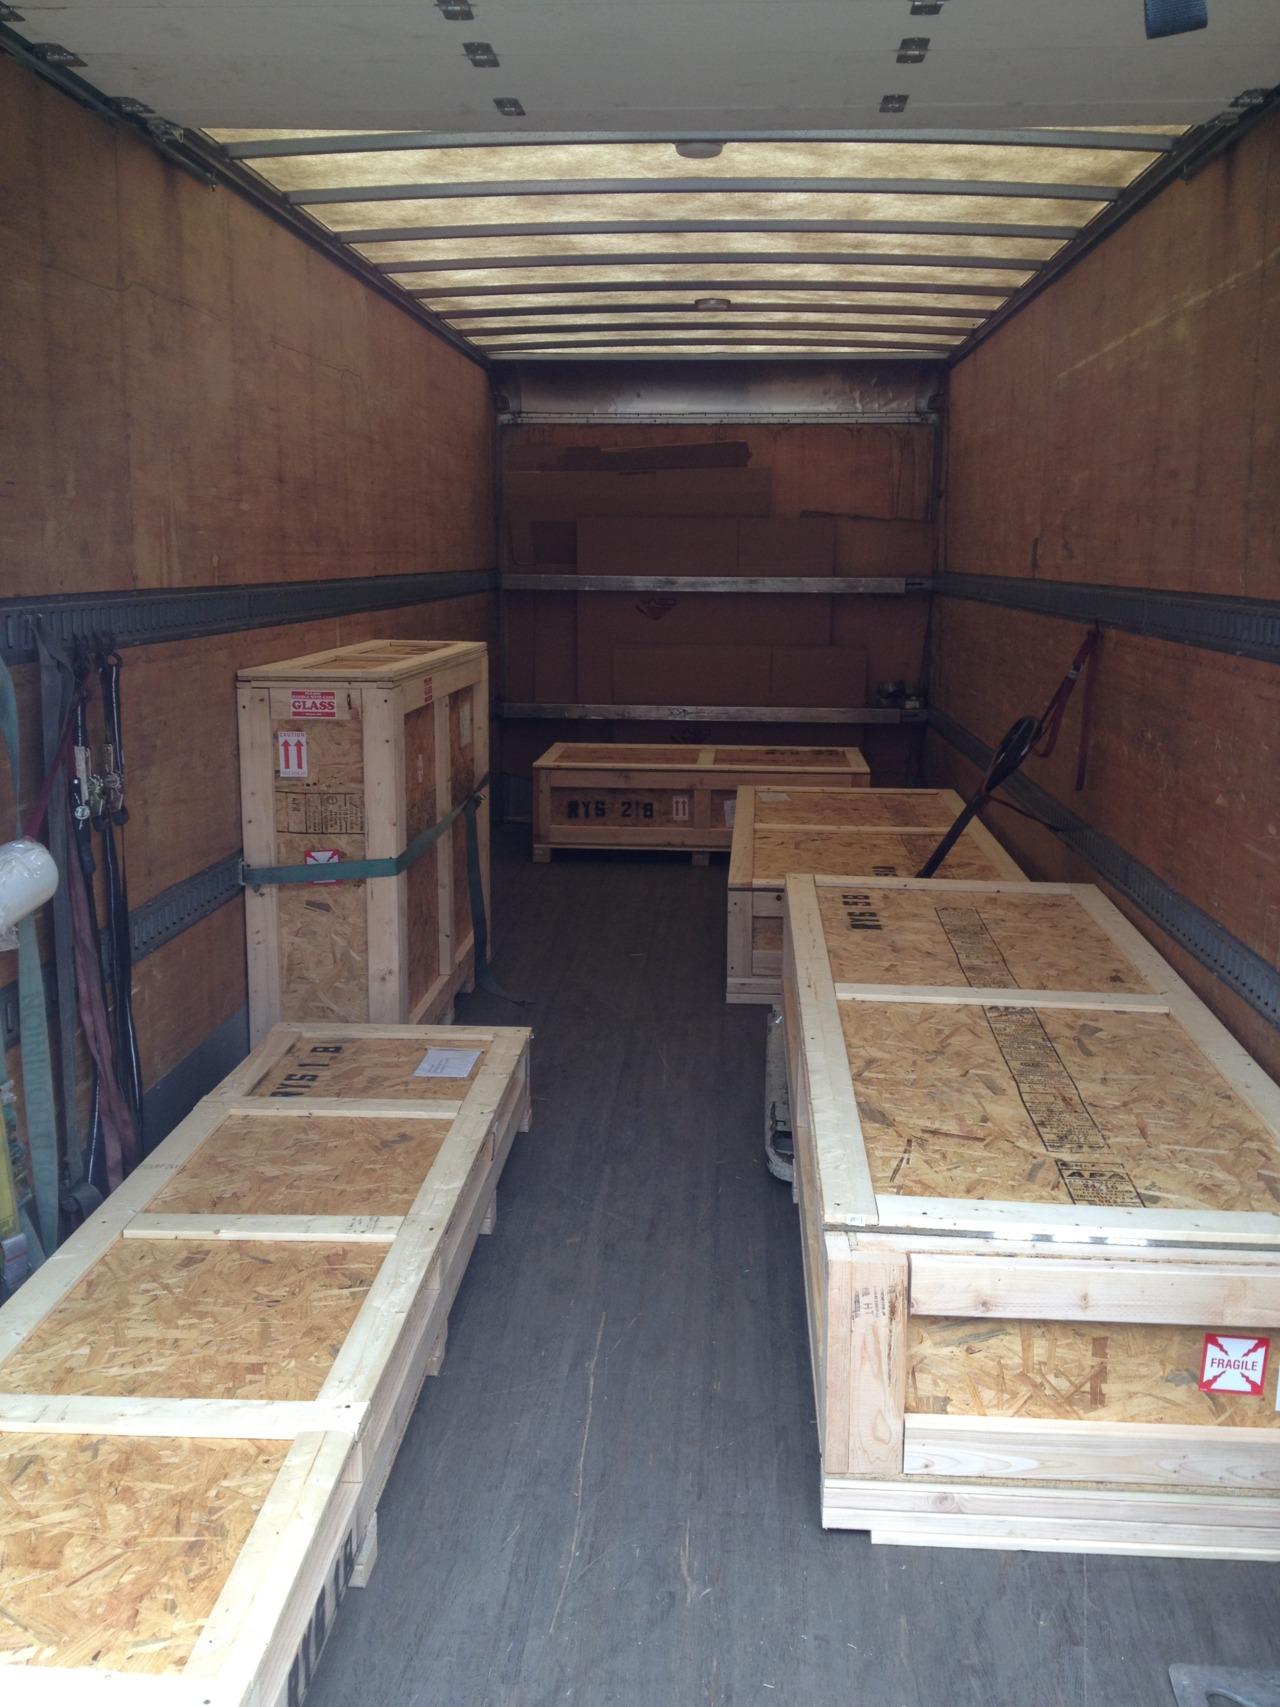 We get lots of questions about how we ship things. Maybe this will help answer some of those questions. This is two conference tables and a Sleepers coffee table headed to the west coast with an LTL carrier Ceva. FWIW, the folks at Ceva rock! Thanks to John Murphy for turning us onto them.